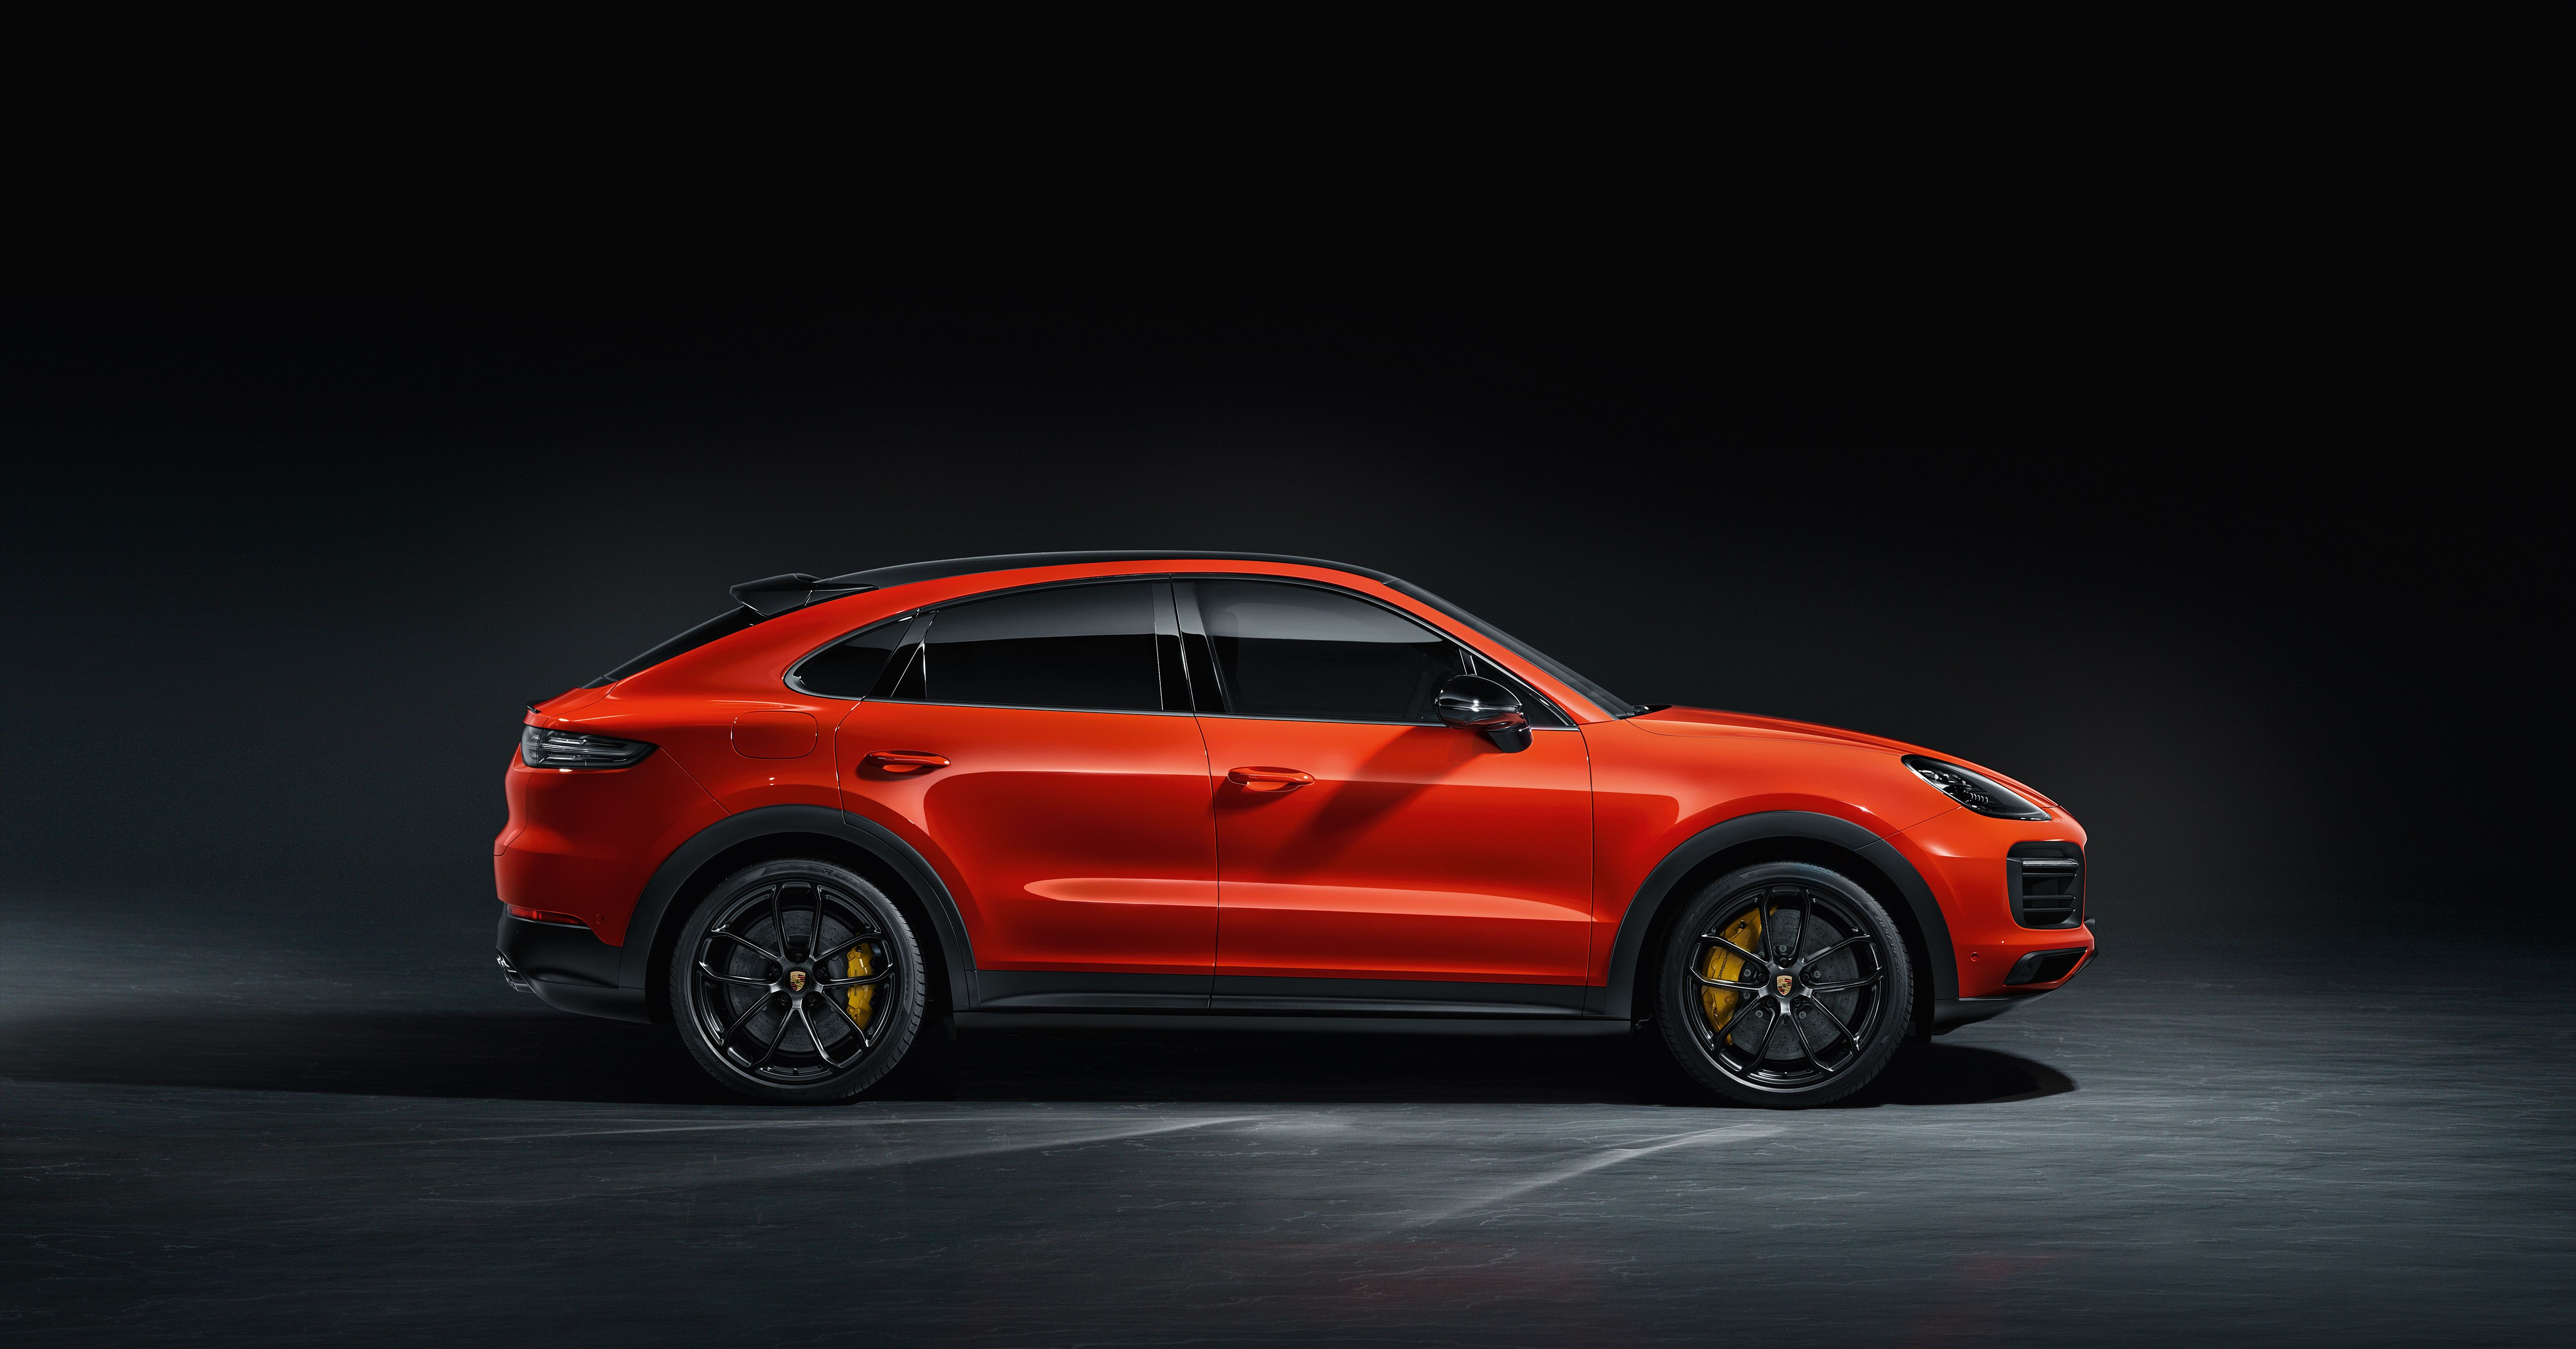 2020 Porsche Cayenne Coupe SUV \u2014 Prices and On,Sale Date